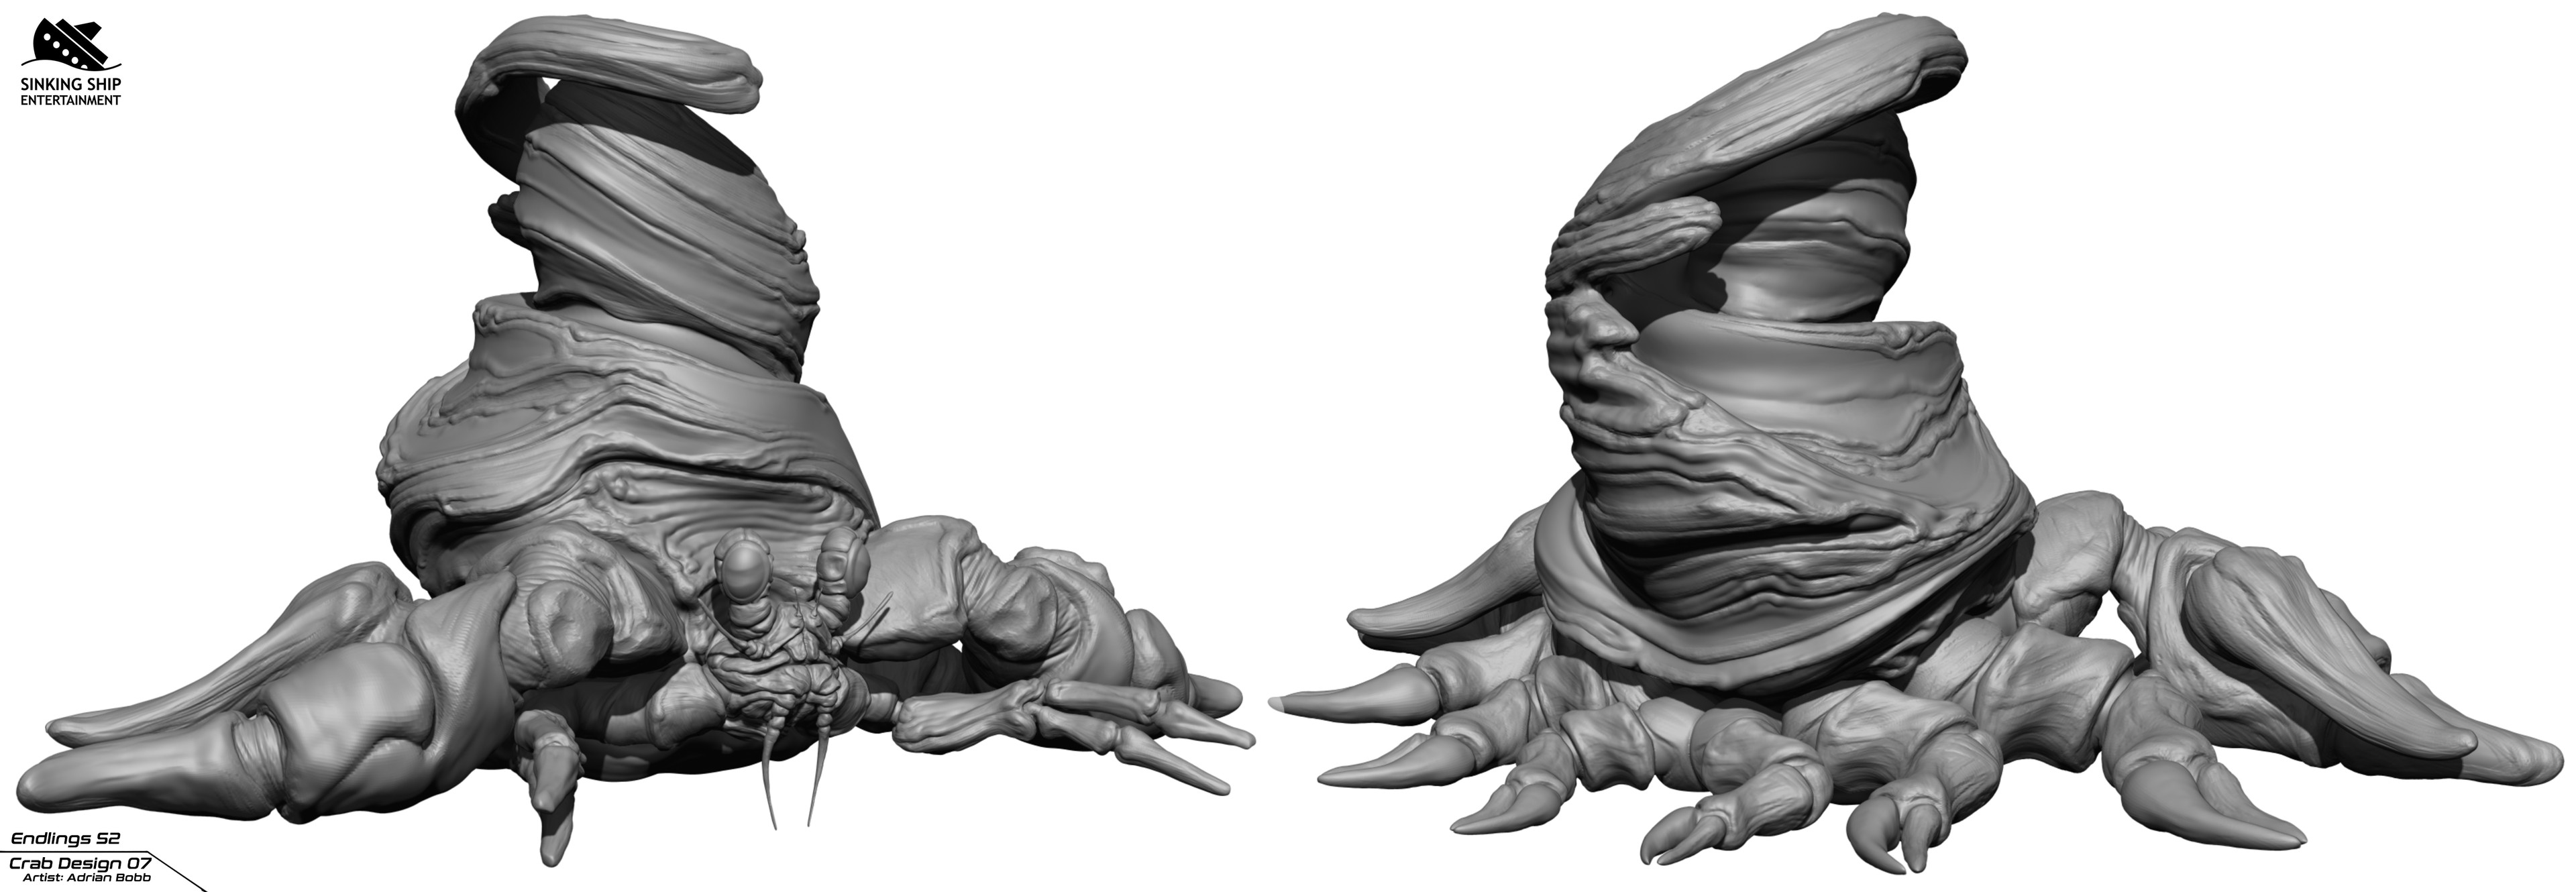 Getting close to the final design.  I think this shell made it to the end.